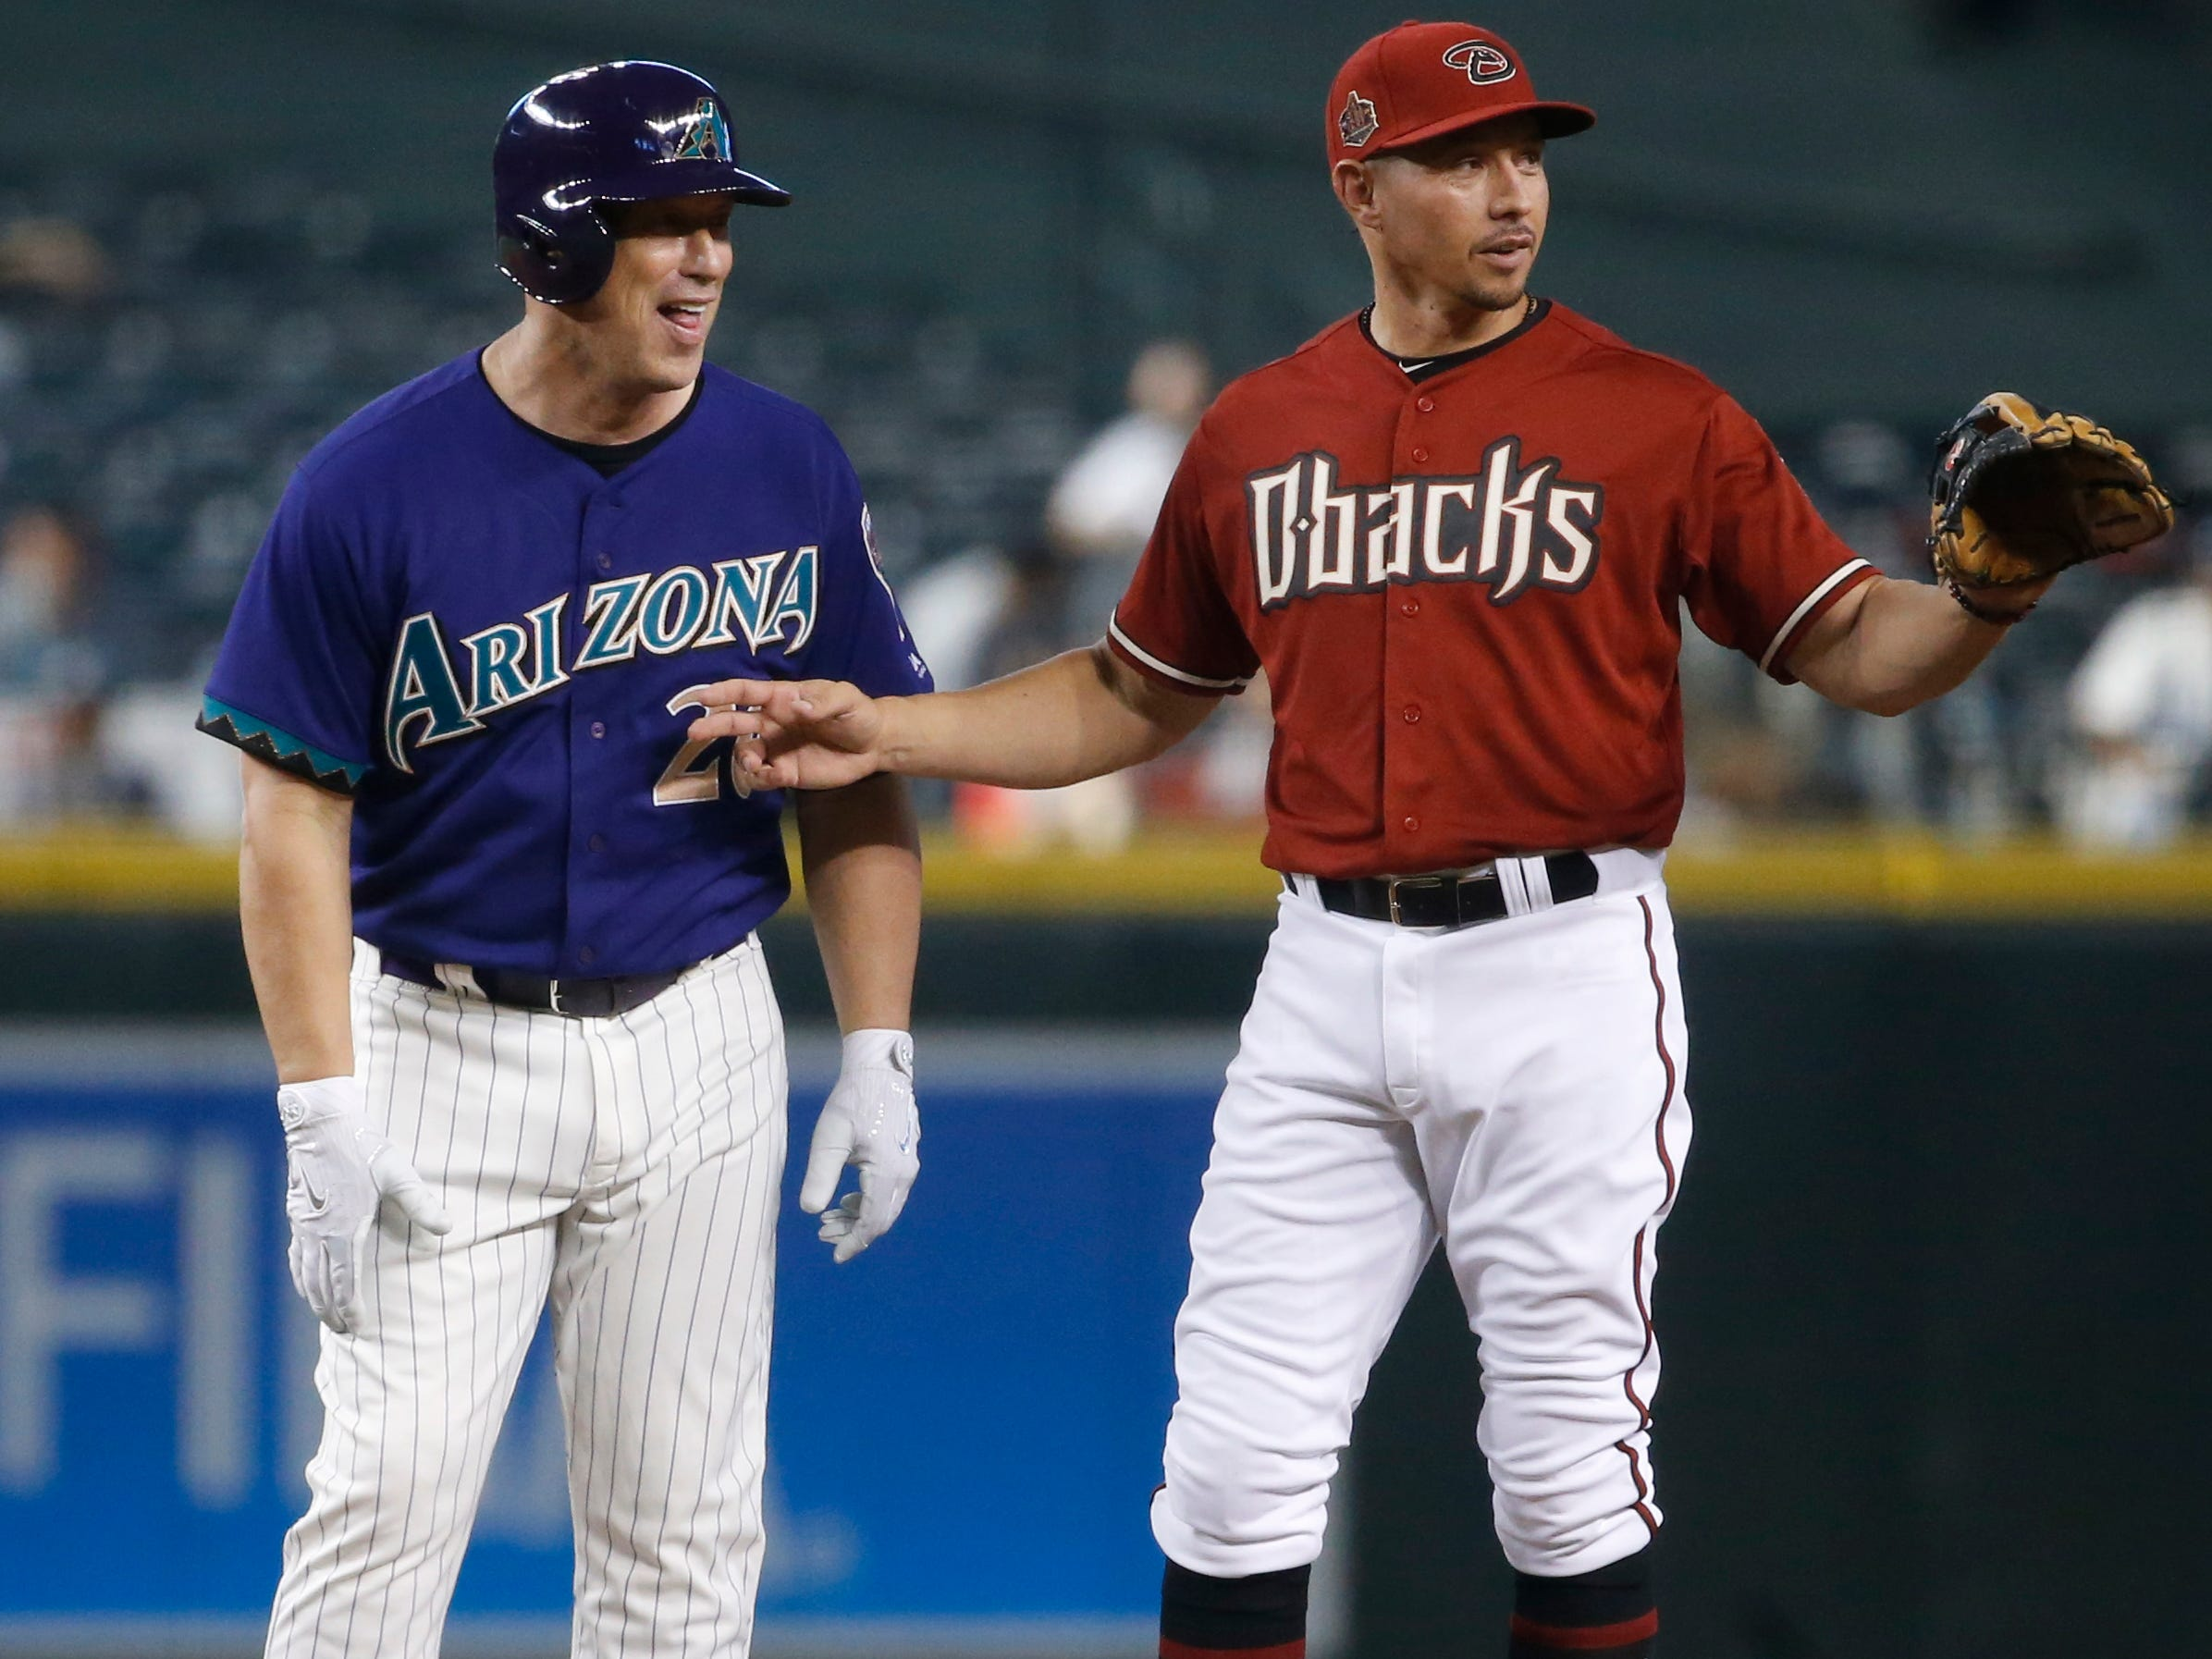 Diamondbacks Purple team's Luis Gonzalez (20) winds up at second after a hit against the Red team during the Generations Diamondbacks Alumni game at Chase Field in Phoenix, Ariz. on Aug. 4, 2018.